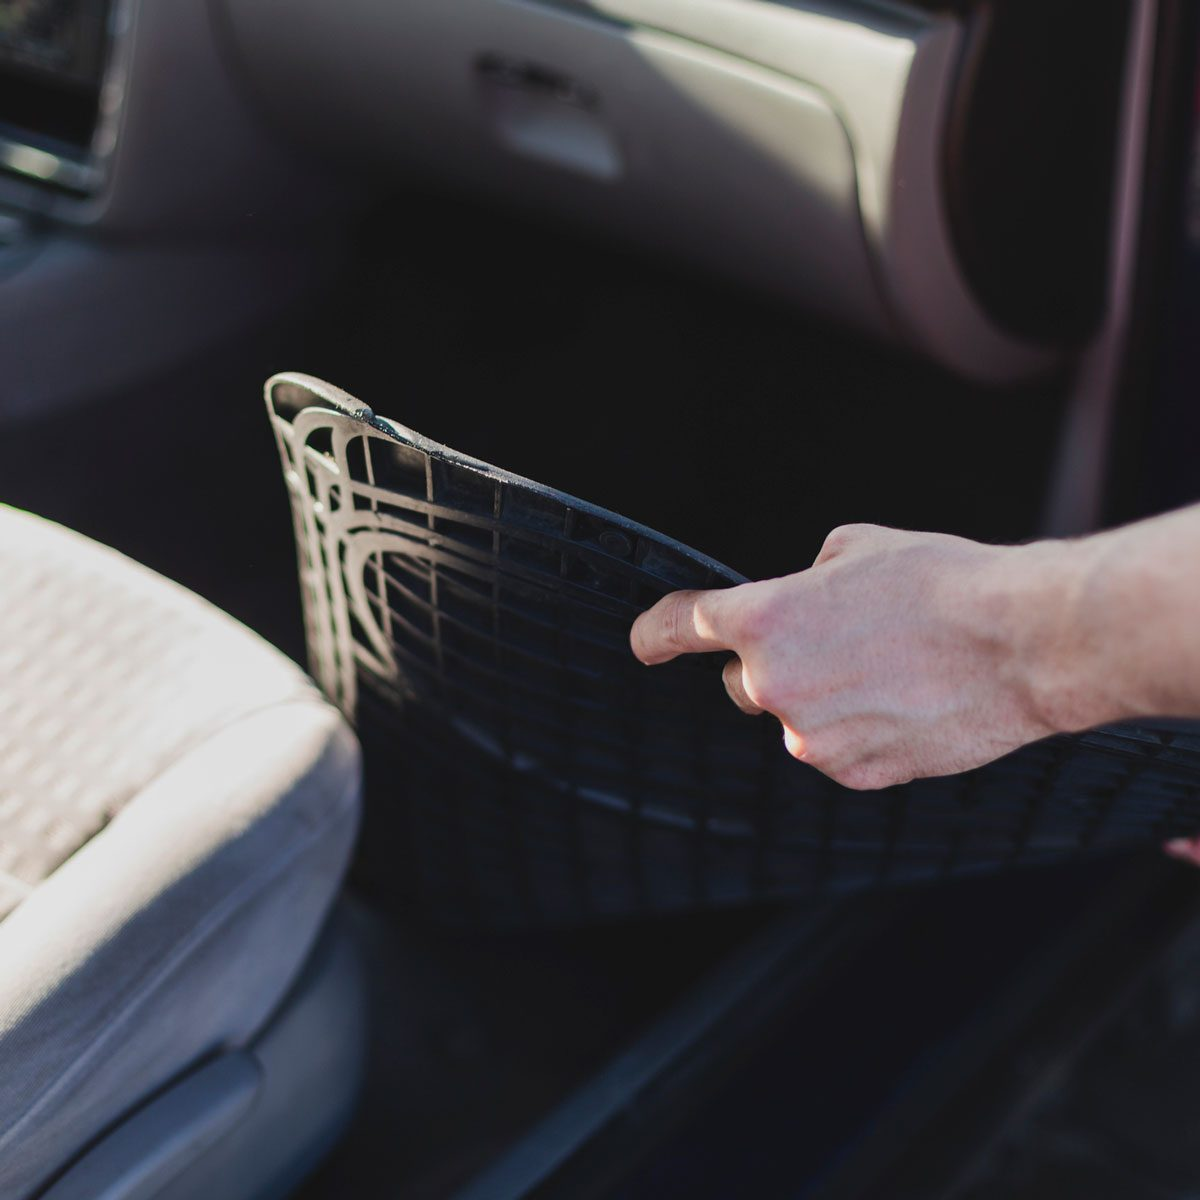 Removing floor mats from car